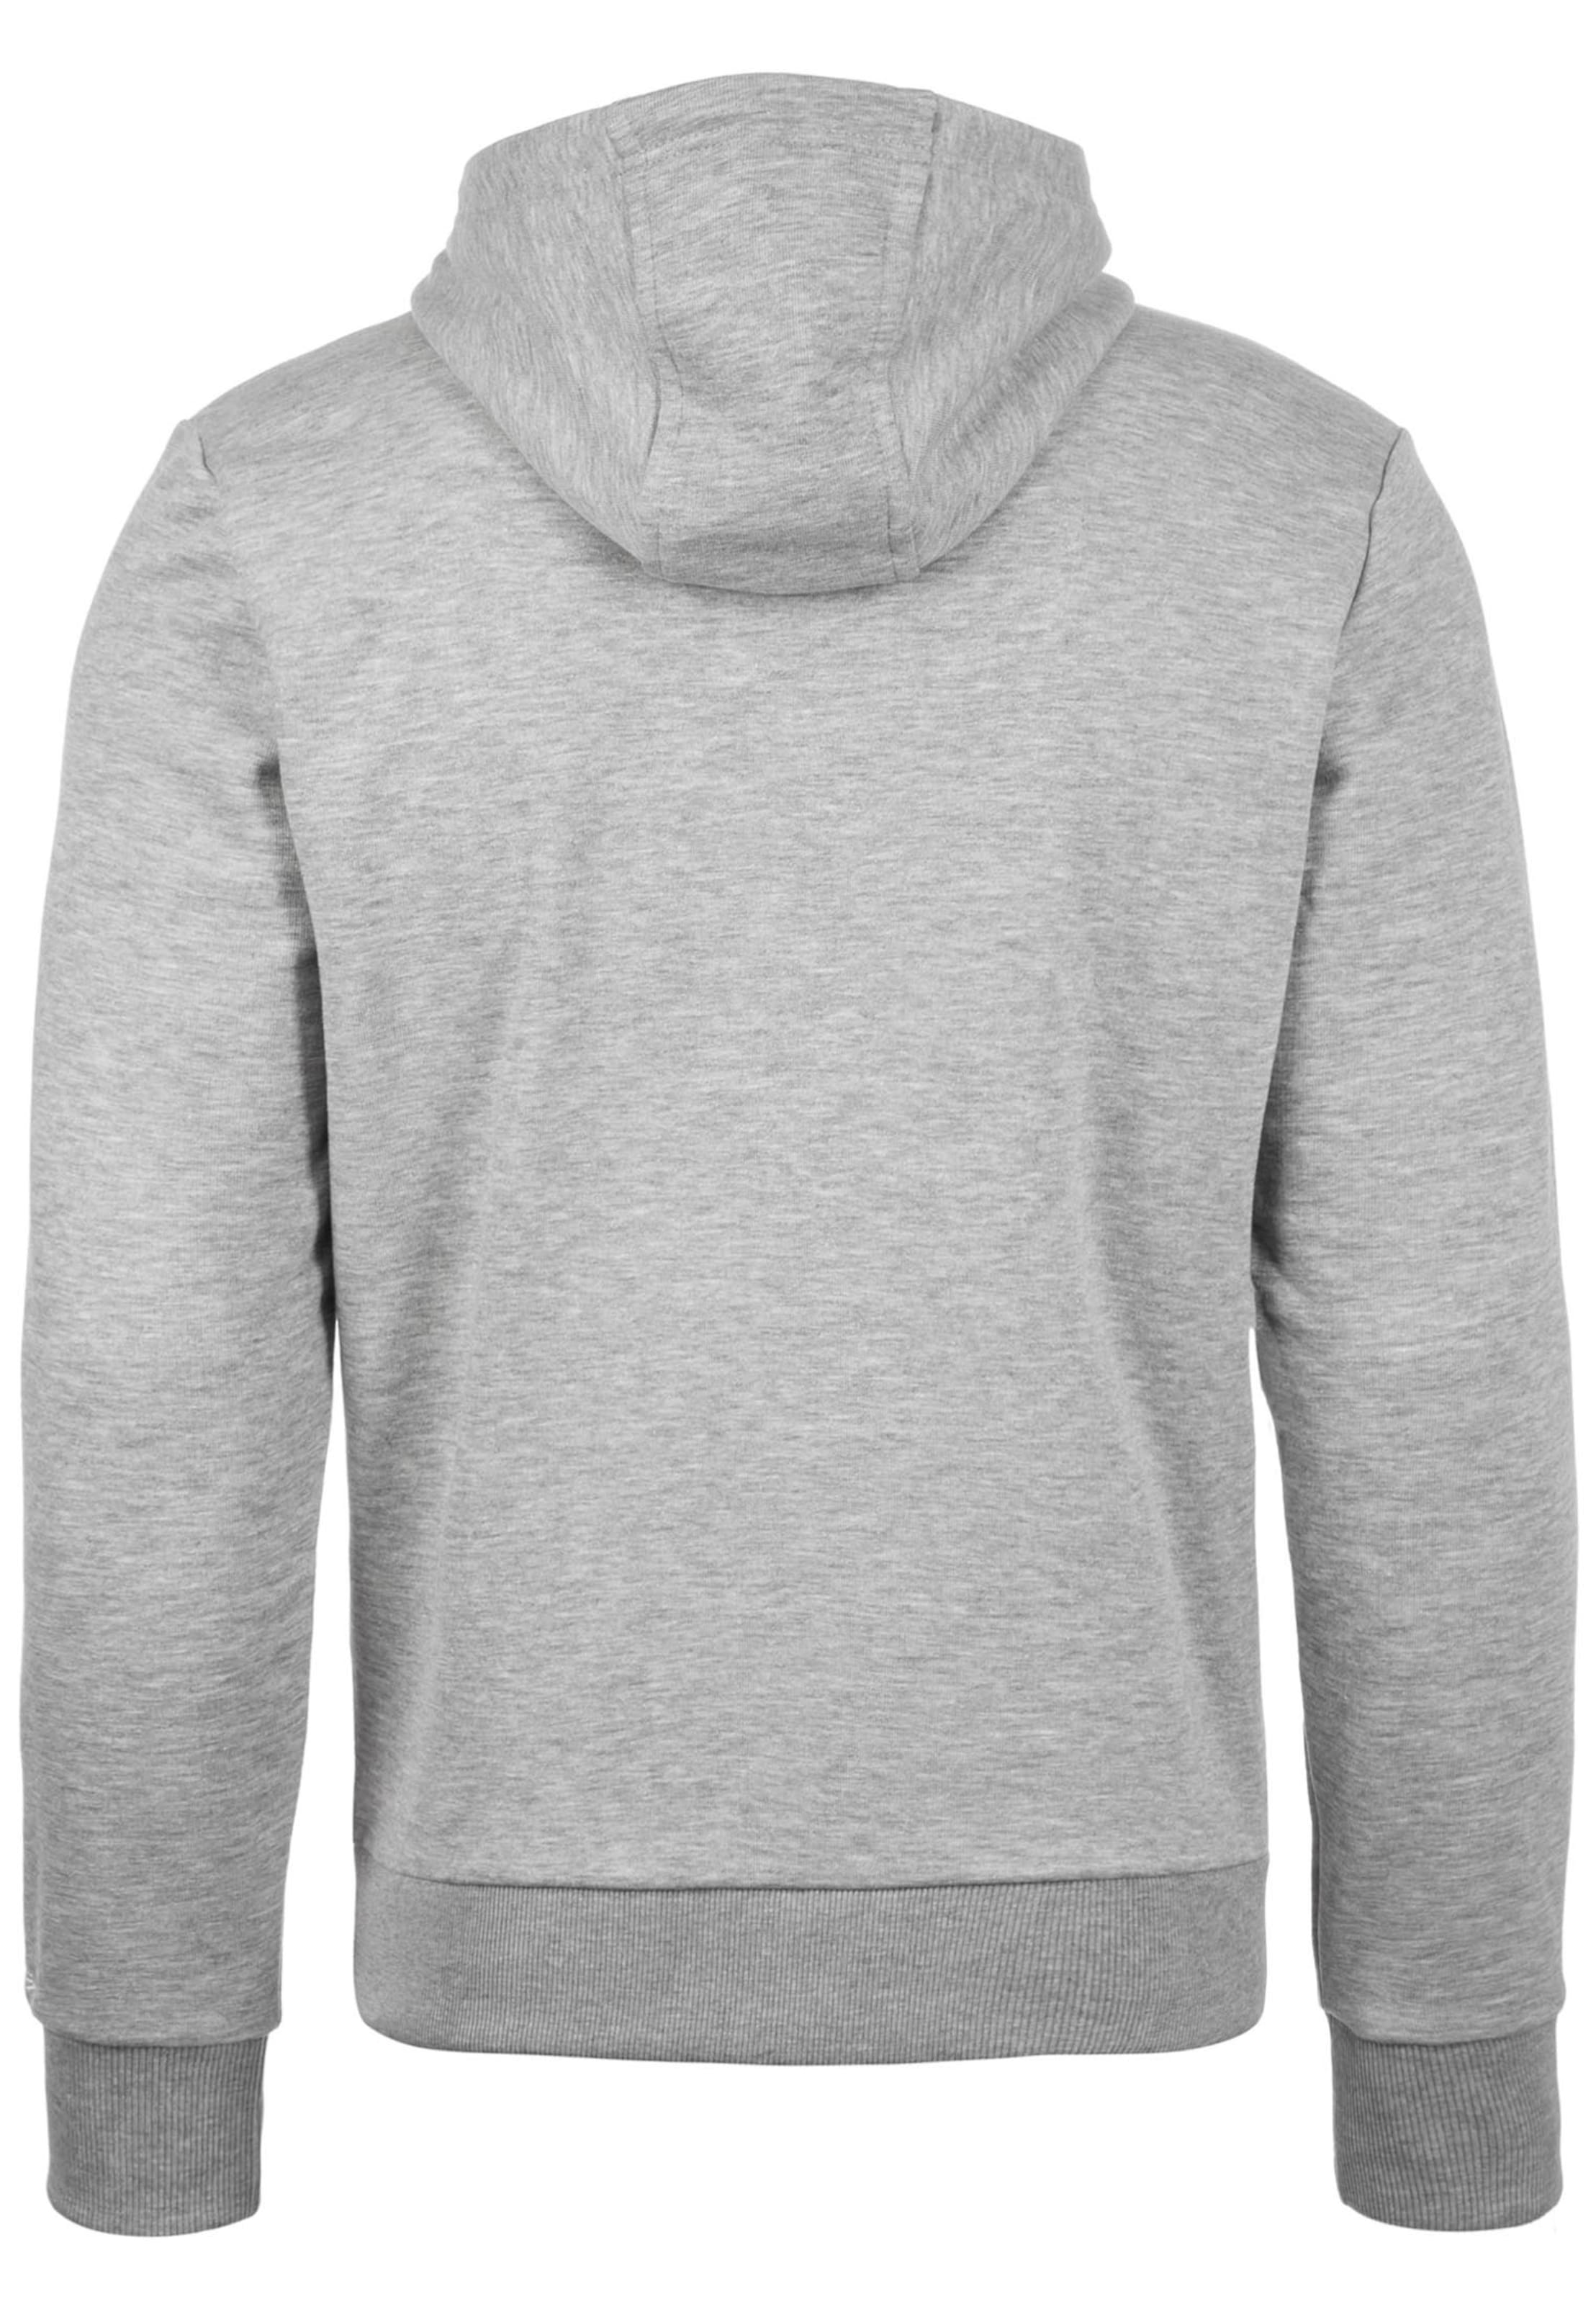 New Sweat En Gris shirt Era Aq4jL35R